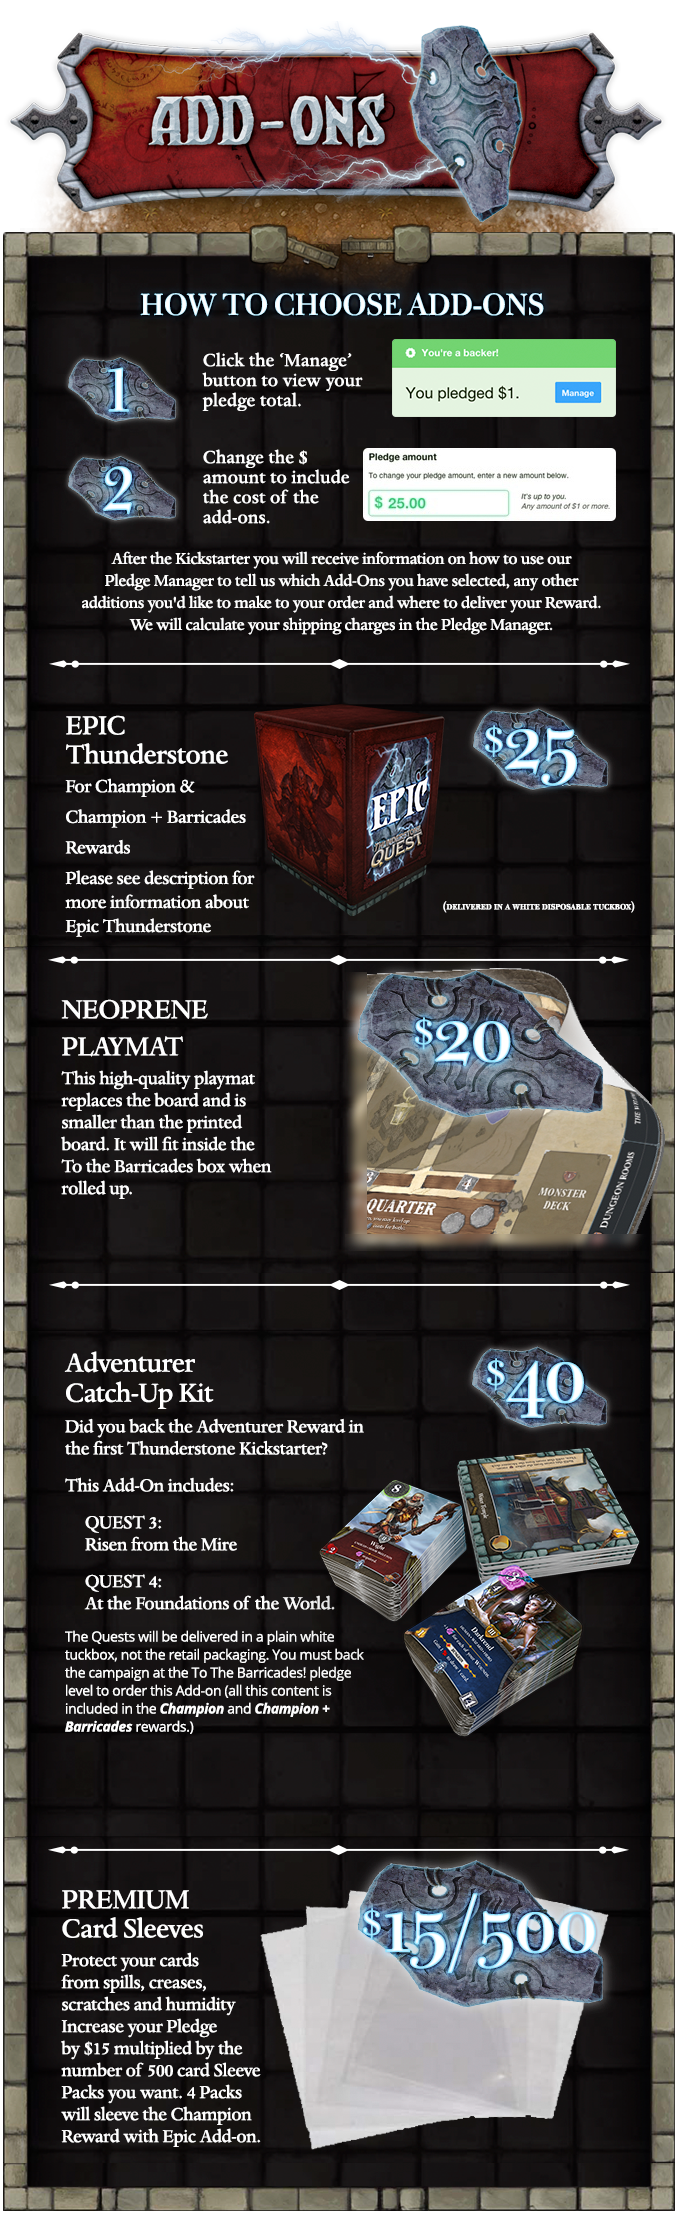 Thunderstone Quest Add-Ons